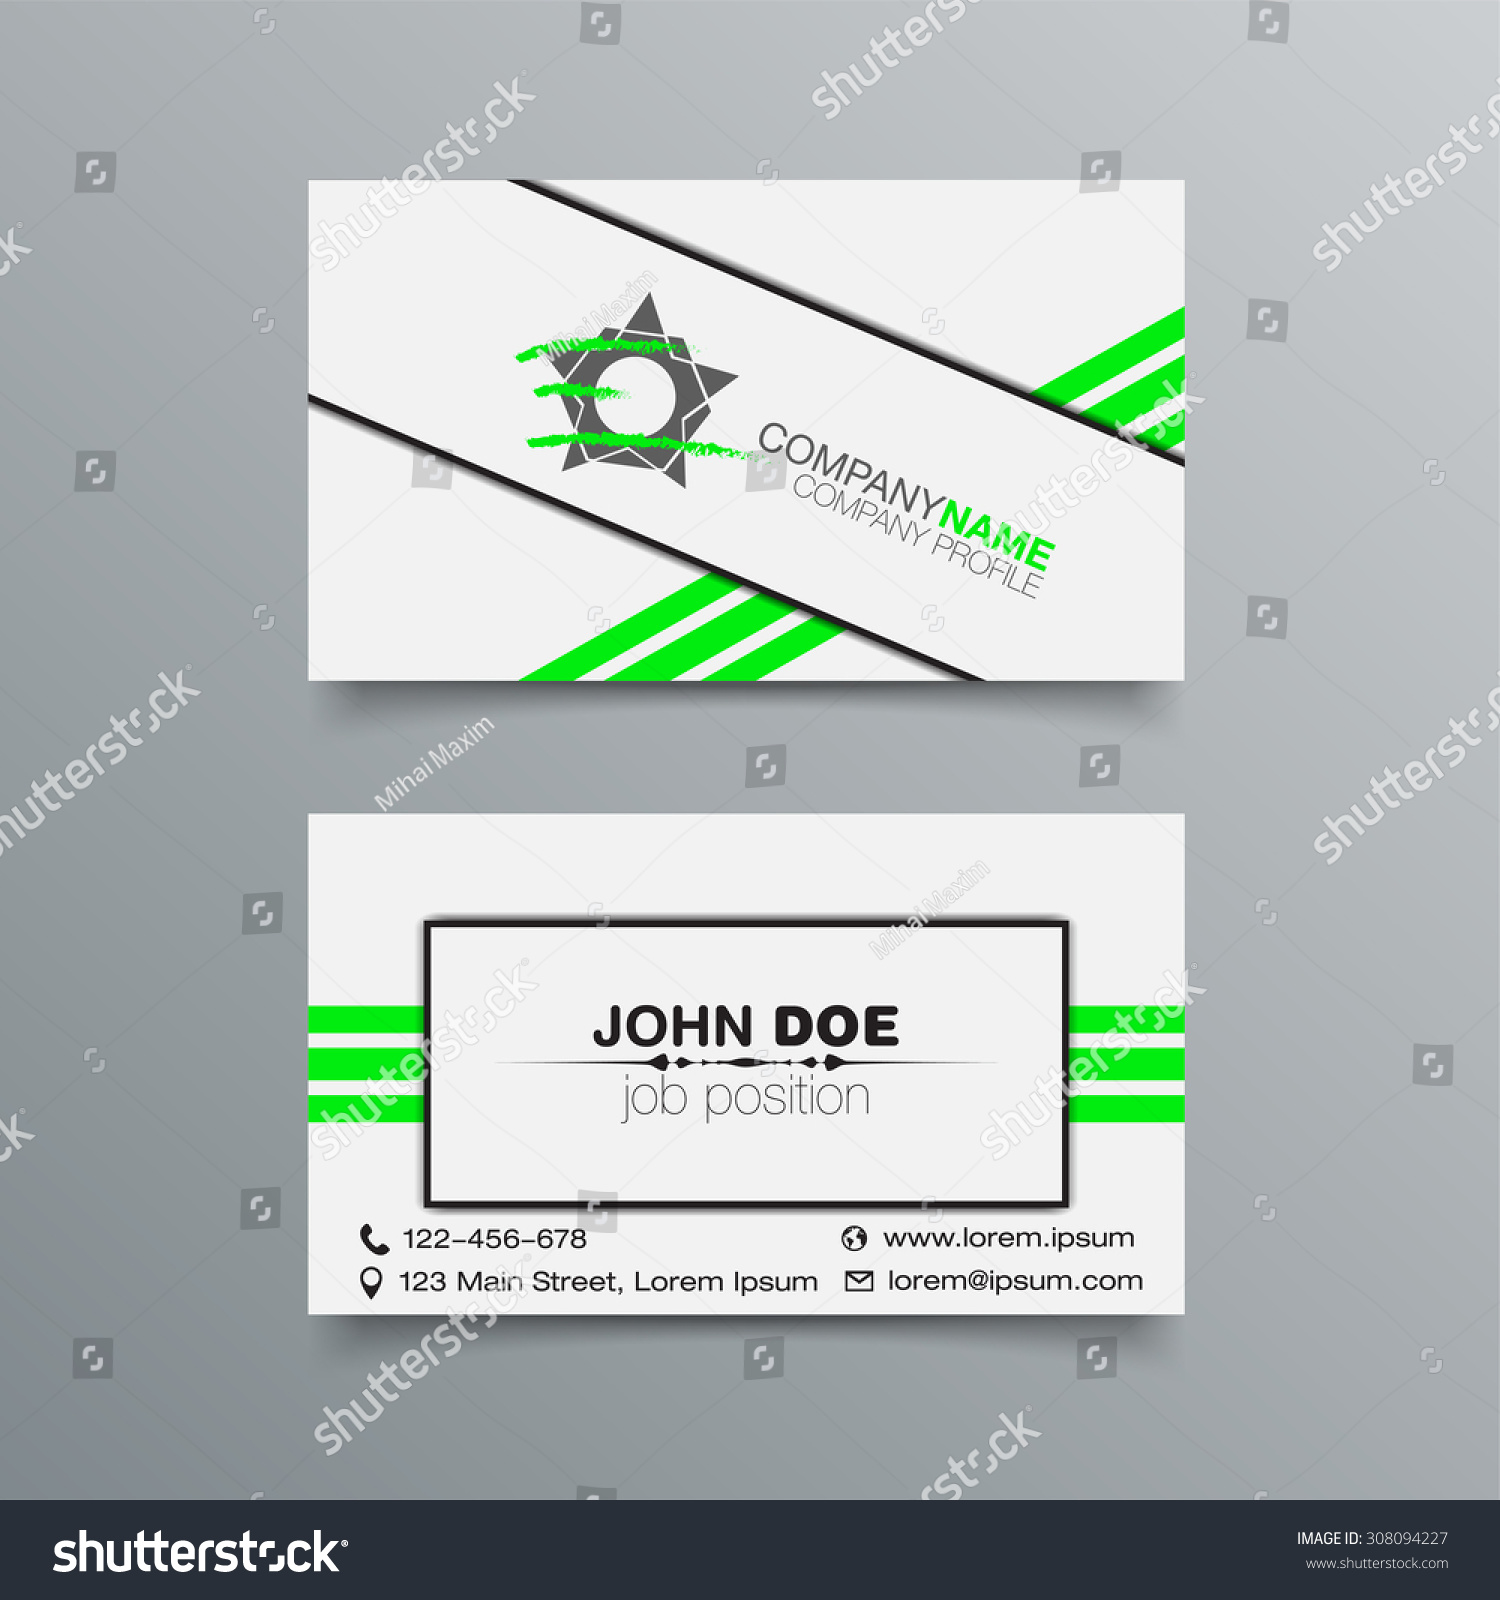 Business card background design template stock stock vector hd business card background design template stock vector illustration reheart Images